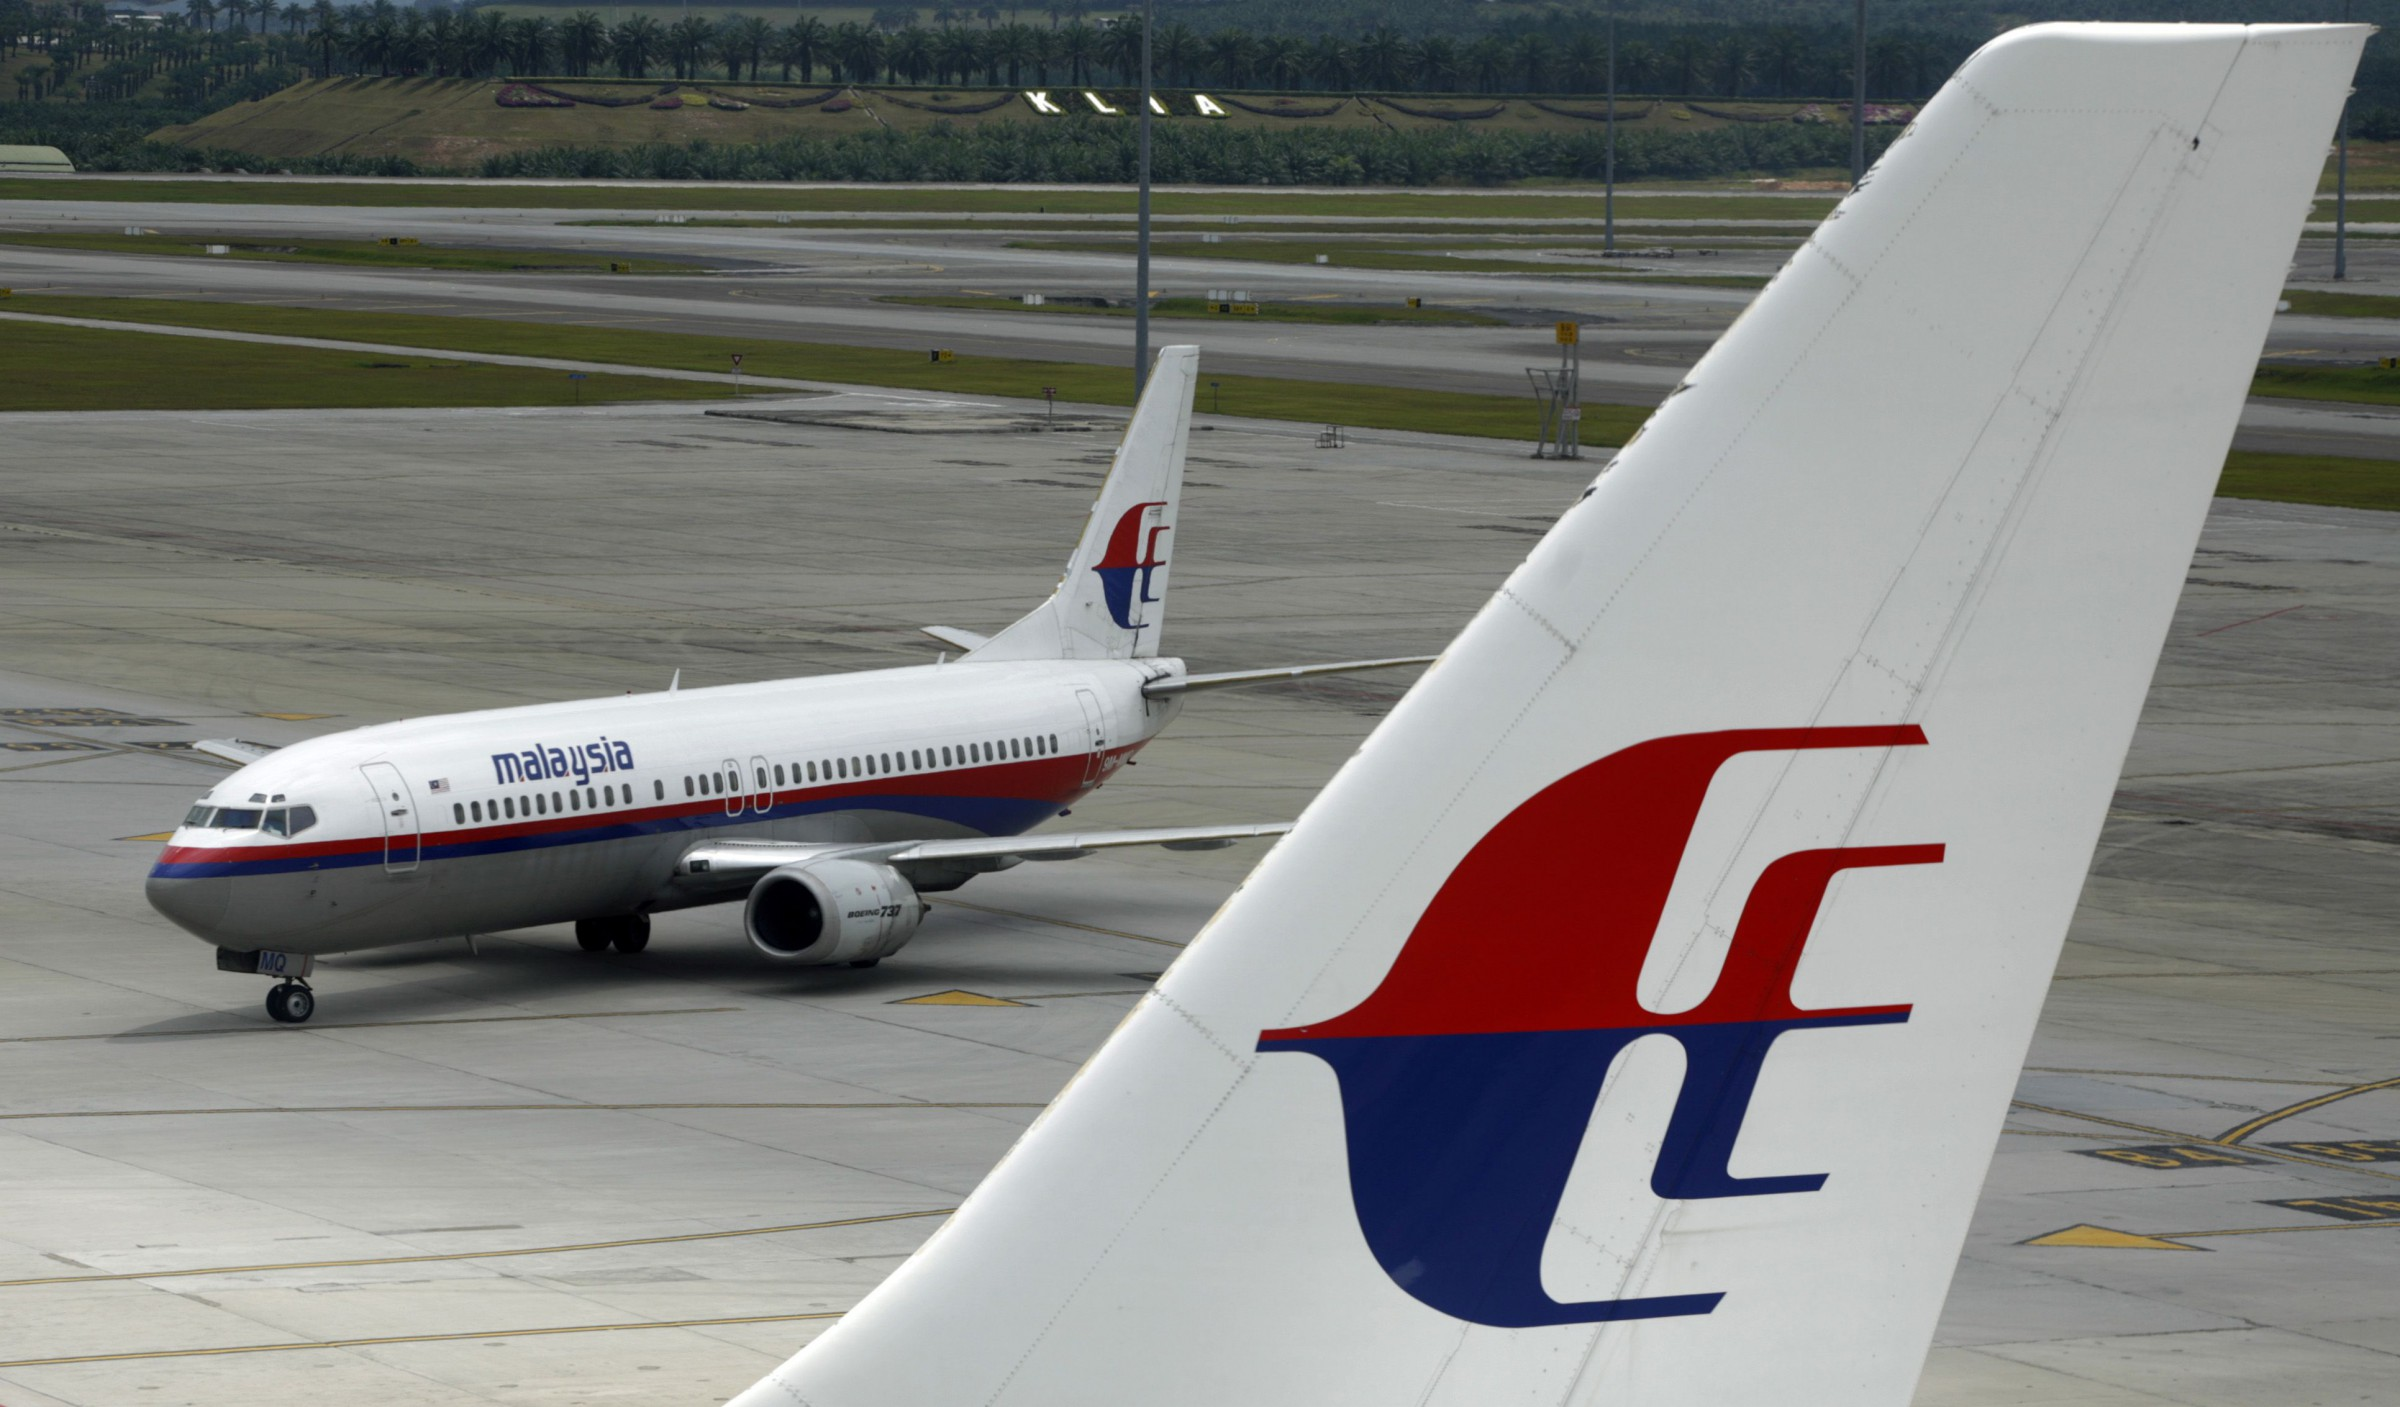 An aircraft of Malaysian Airline System taxis on the tarmac at Kuala Lumpur International Airport in Sepang outside Kuala Lumpur February 26, 2007. Malaysian Airline System Bhd on Monday recorded net profit of 122.04 million ringgit ($34.96 million) for the fourth quarter to Dec. 31, its second straight quarterly profit.  REUTERS/Bazuki Muhammad (MALAYSIA) - RTR1MUP5